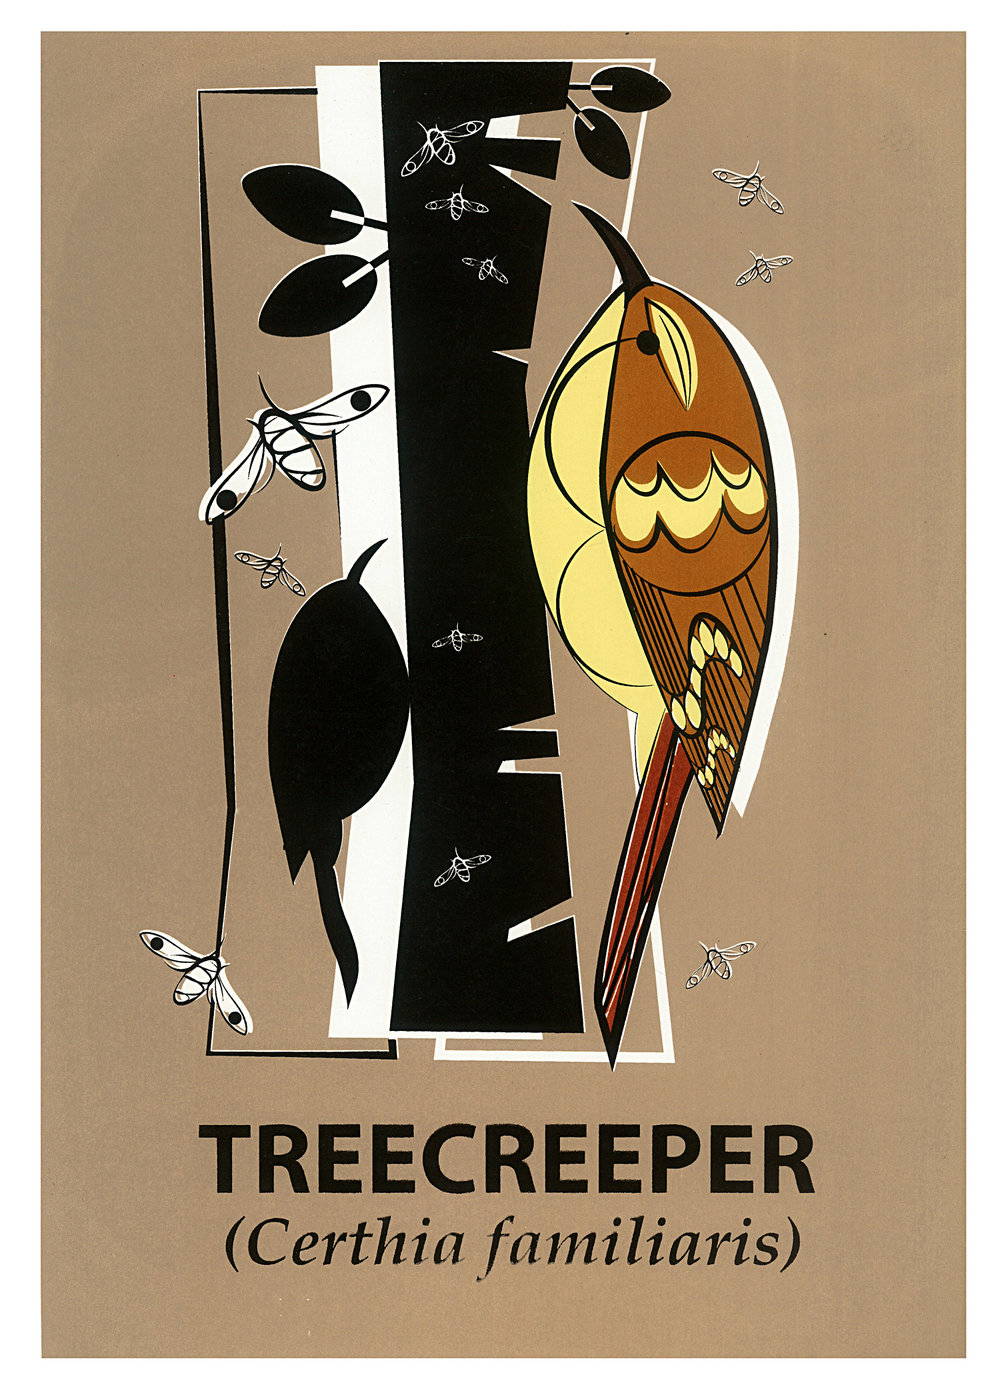 Limited Edition Treecreeper Screenprint